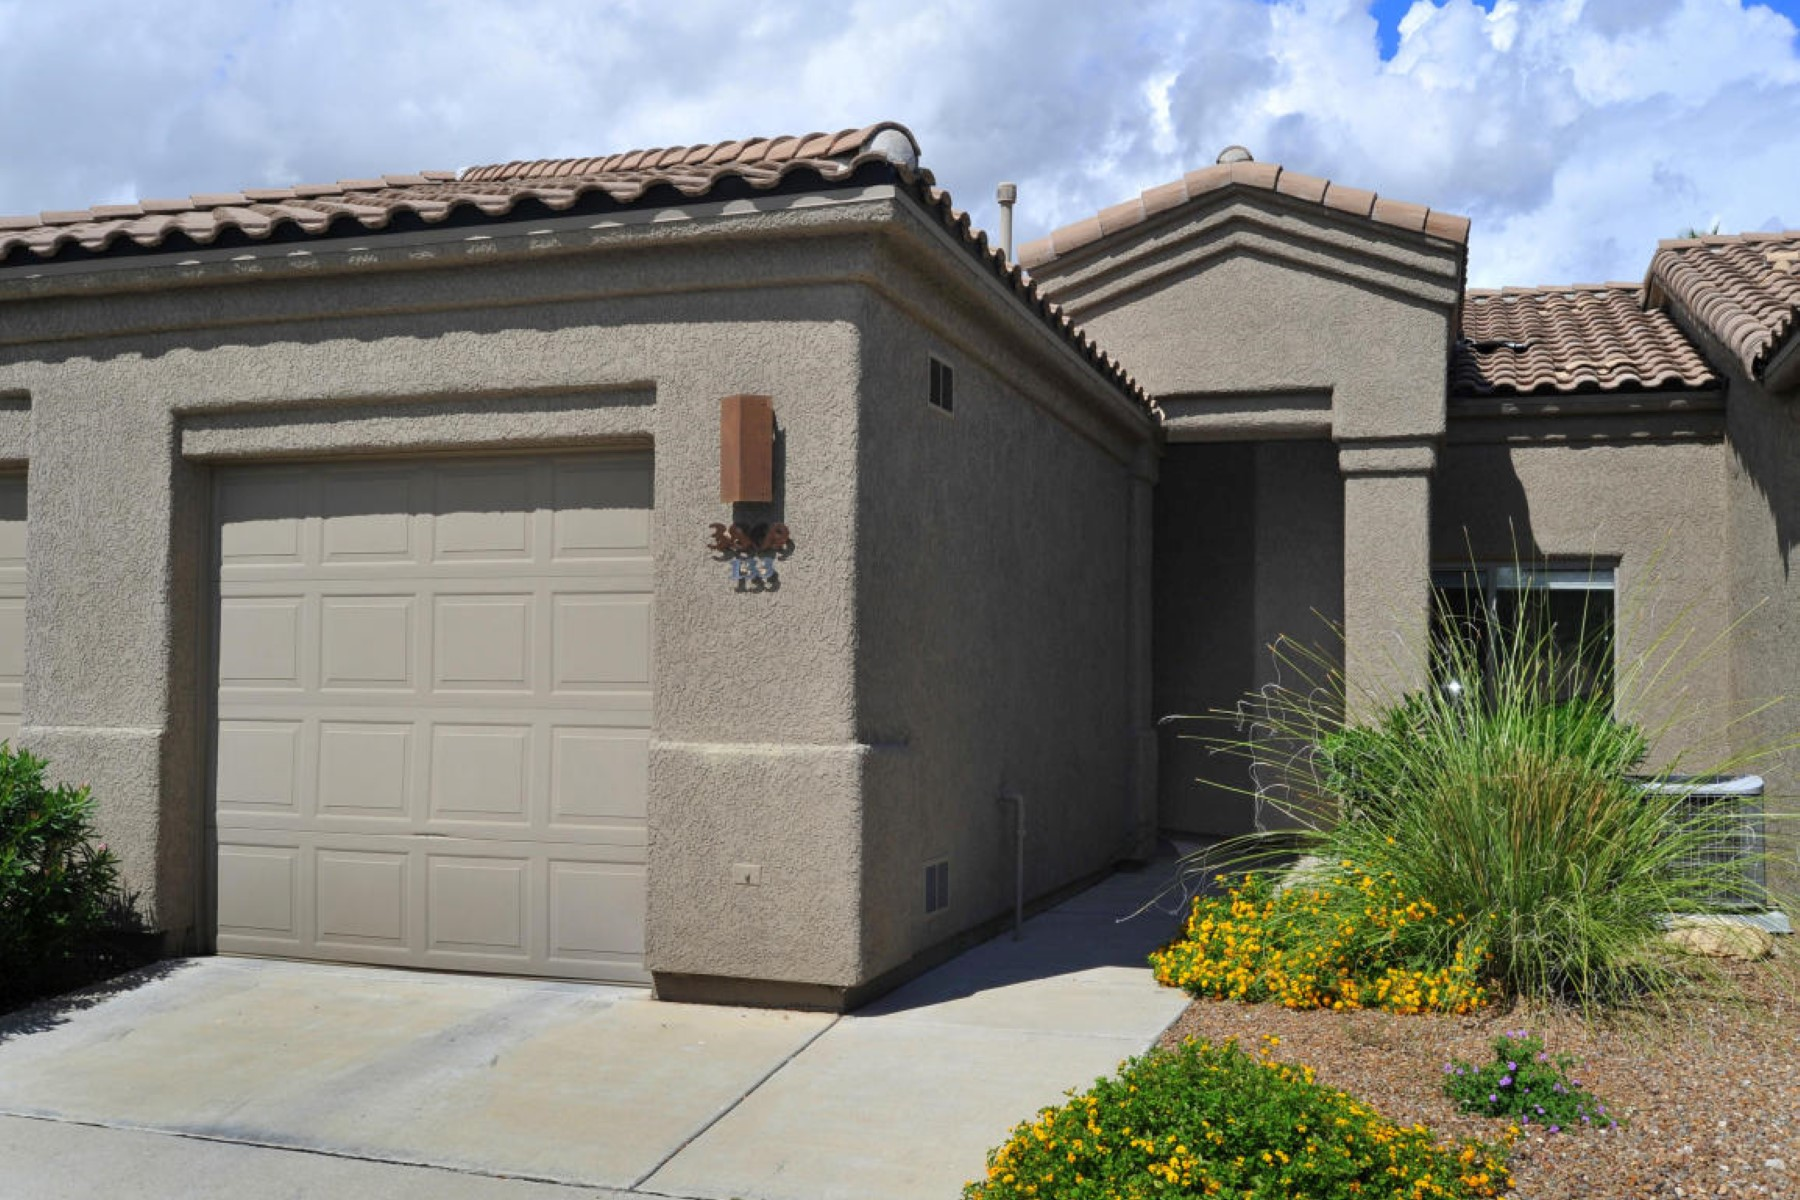 Condomínio para Venda às Fantastic central Foothills gated home with just the right amount of space 3869 N Forest Park Drive #133 Tucson, Arizona 85718 Estados Unidos